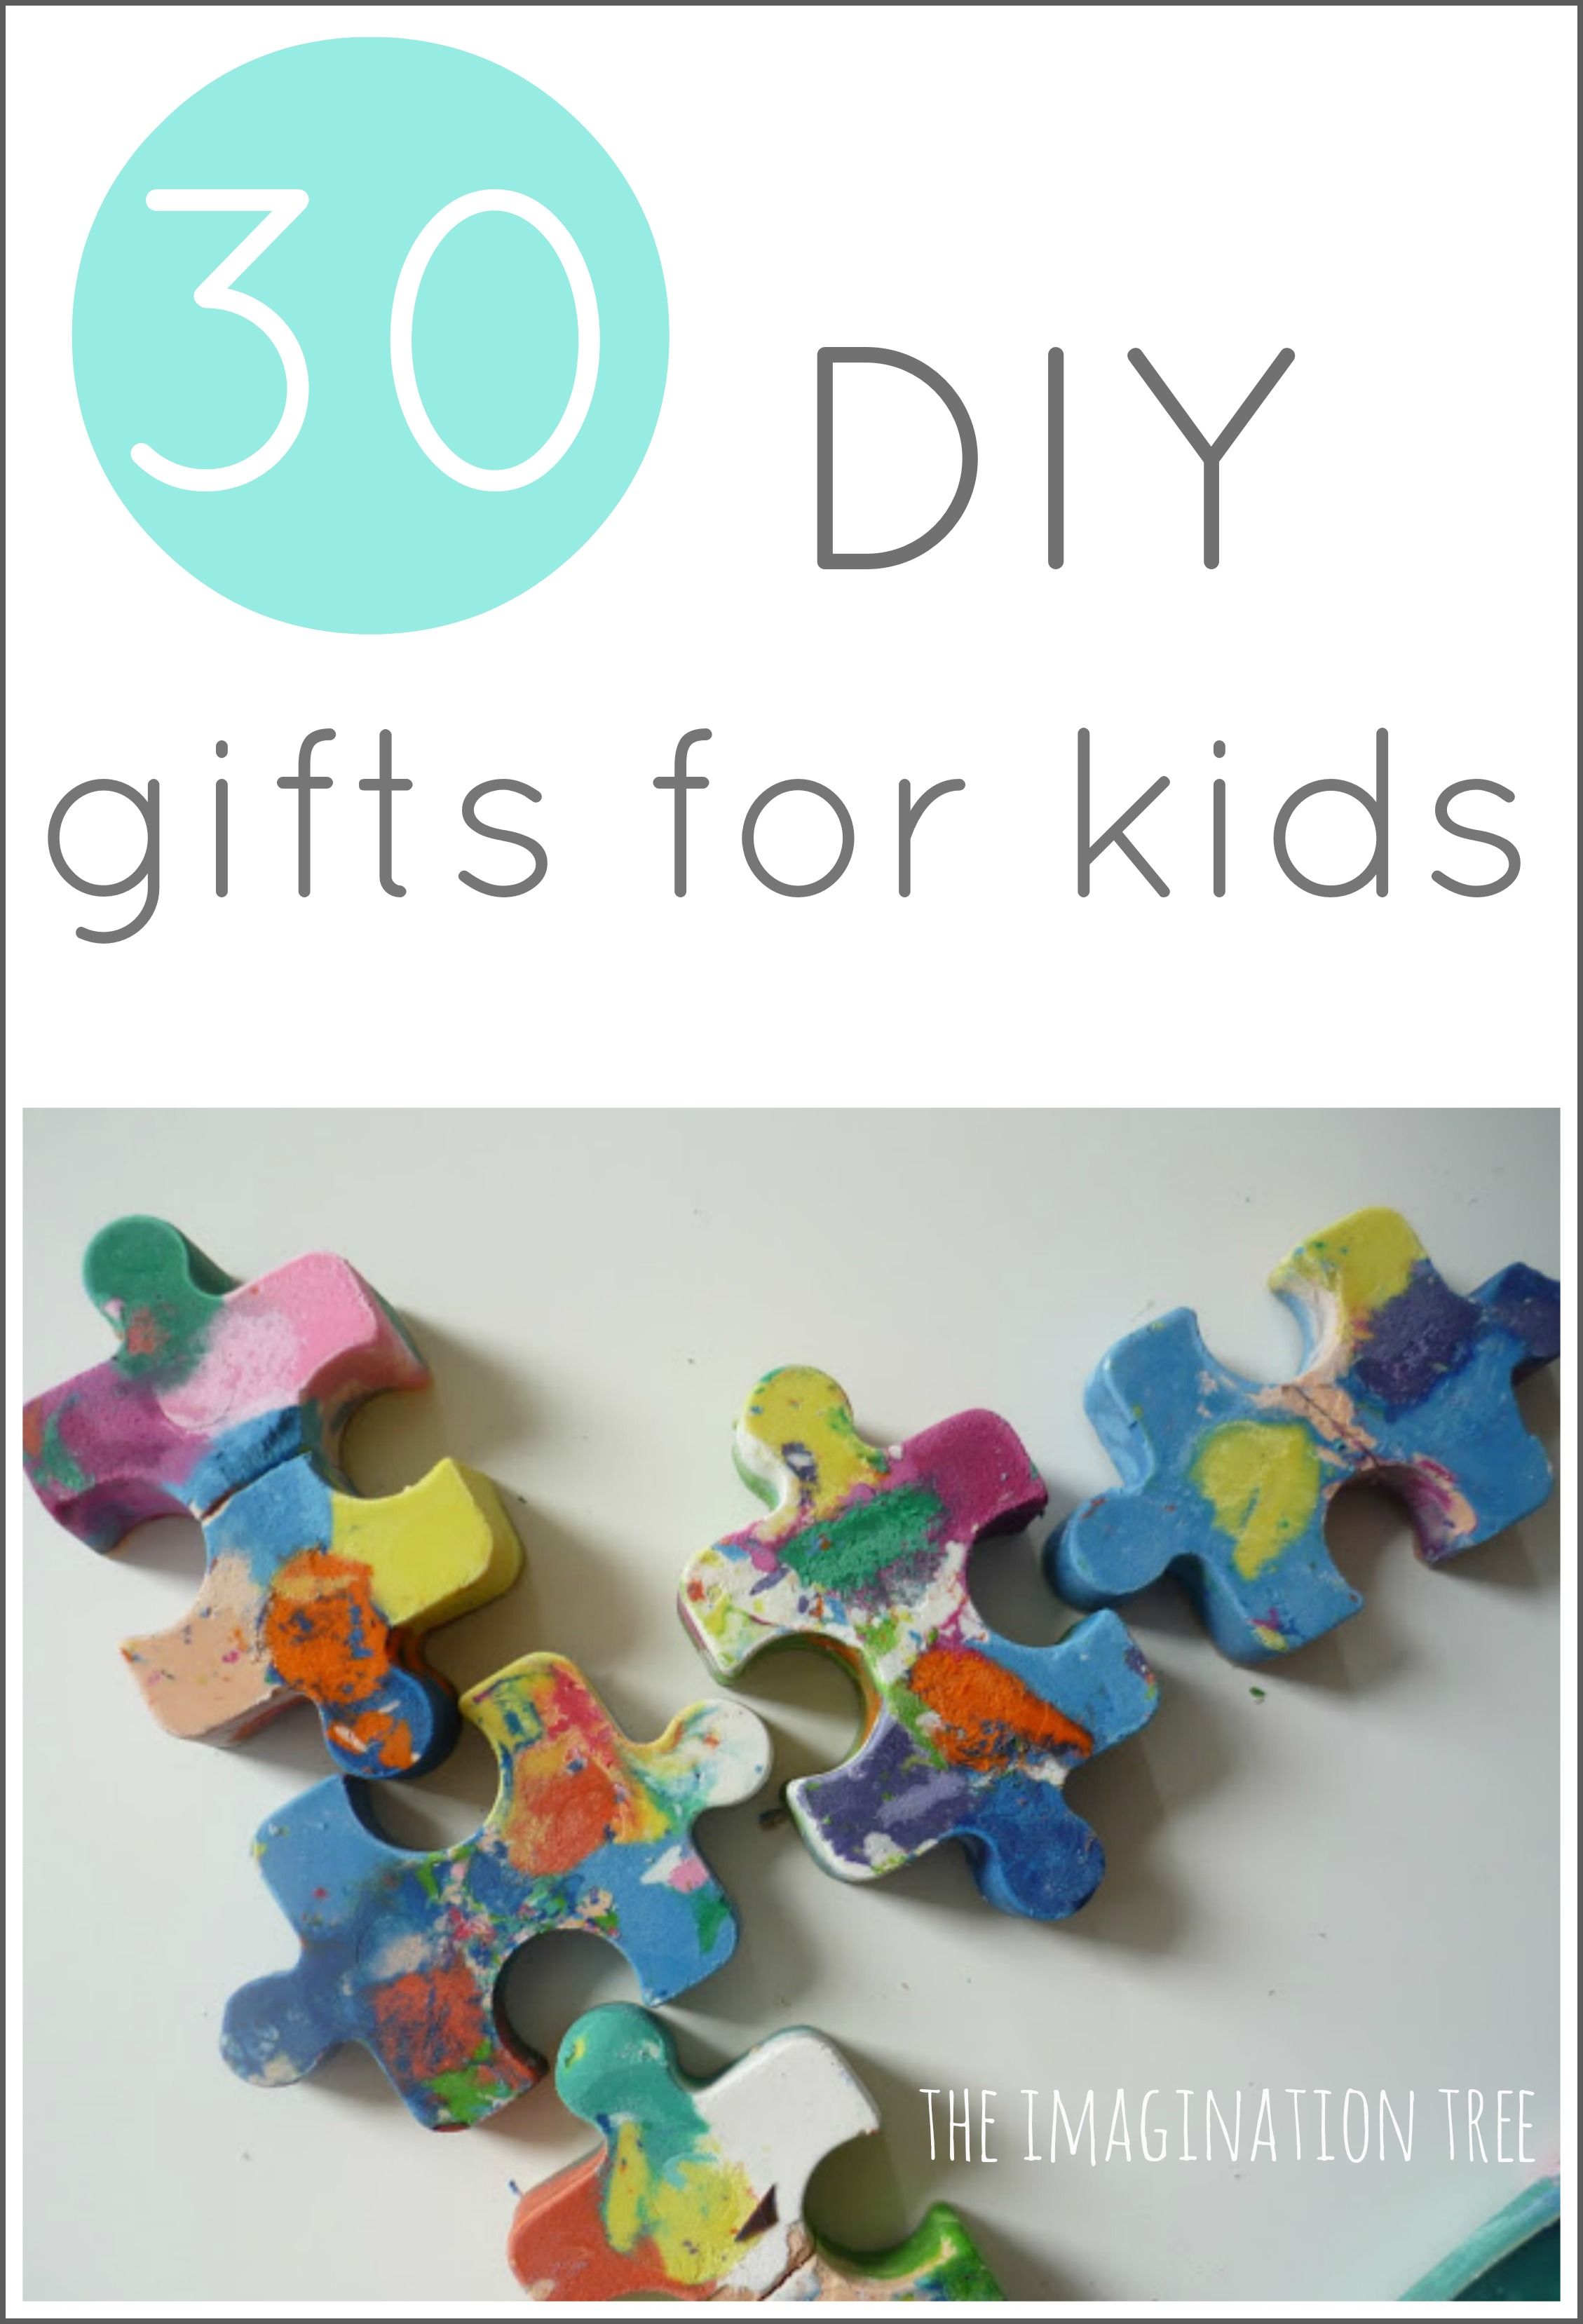 30 diy gifts to make for kids the imagination tree 30 diy gifts to make for kids negle Images